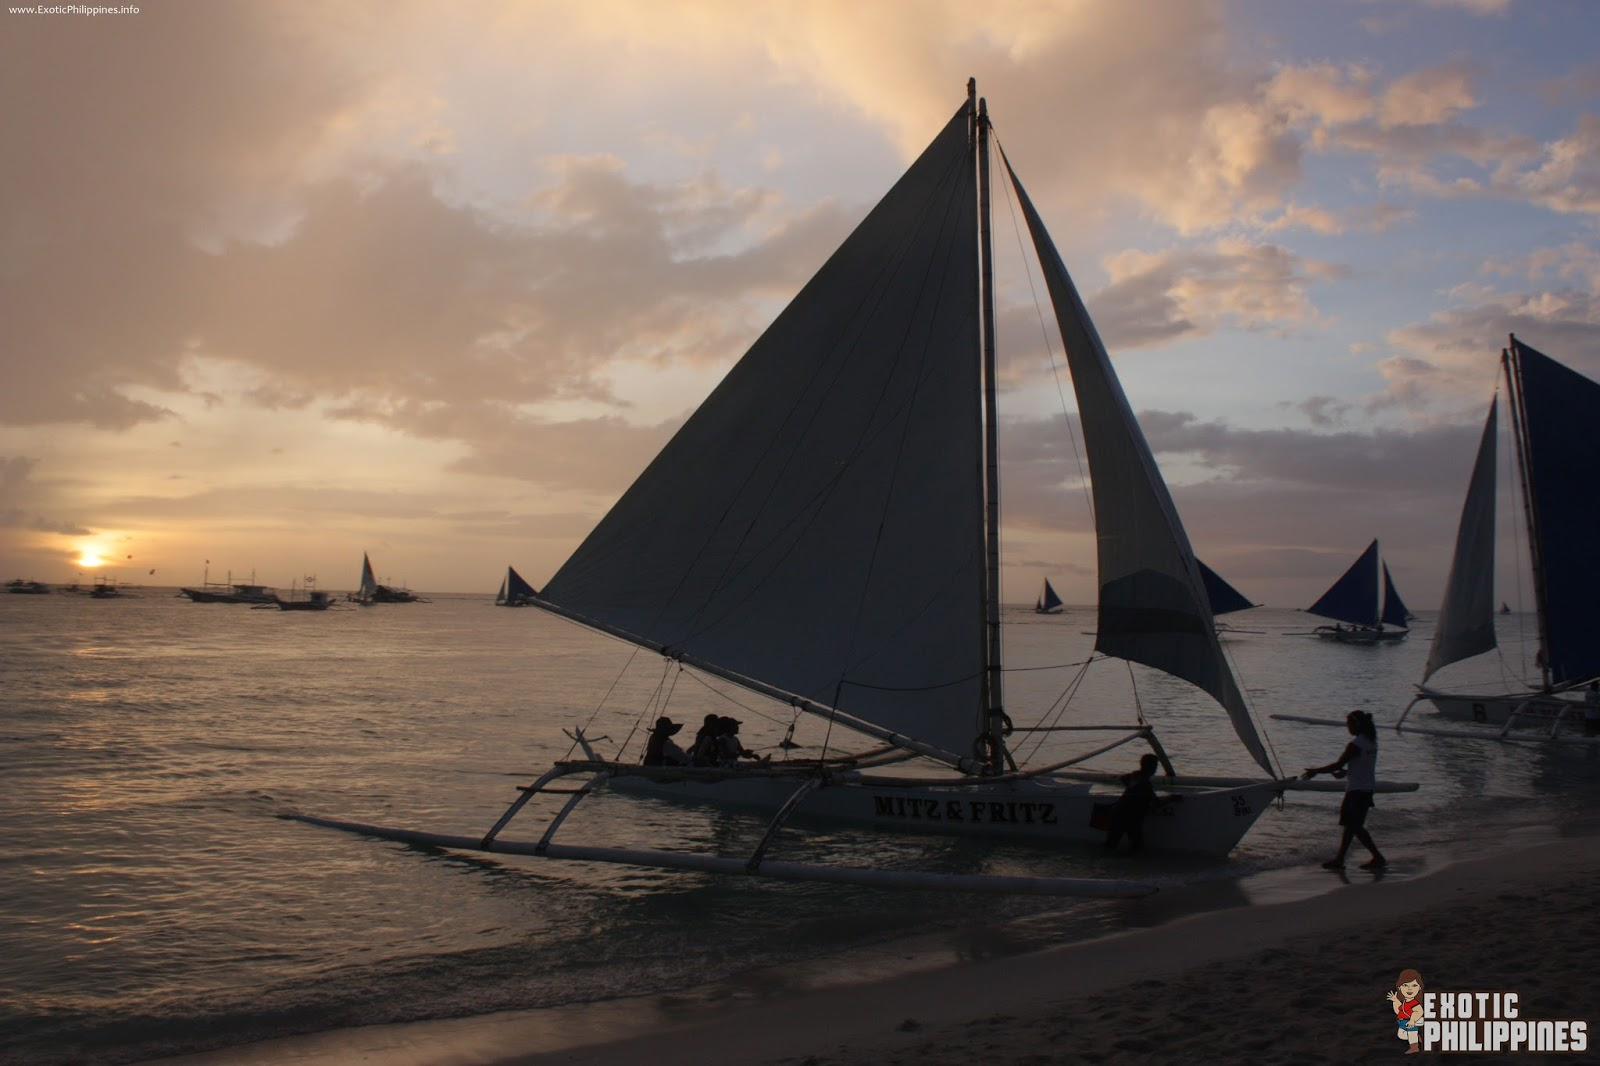 3 Ways on How to Get to Boracay Philippines